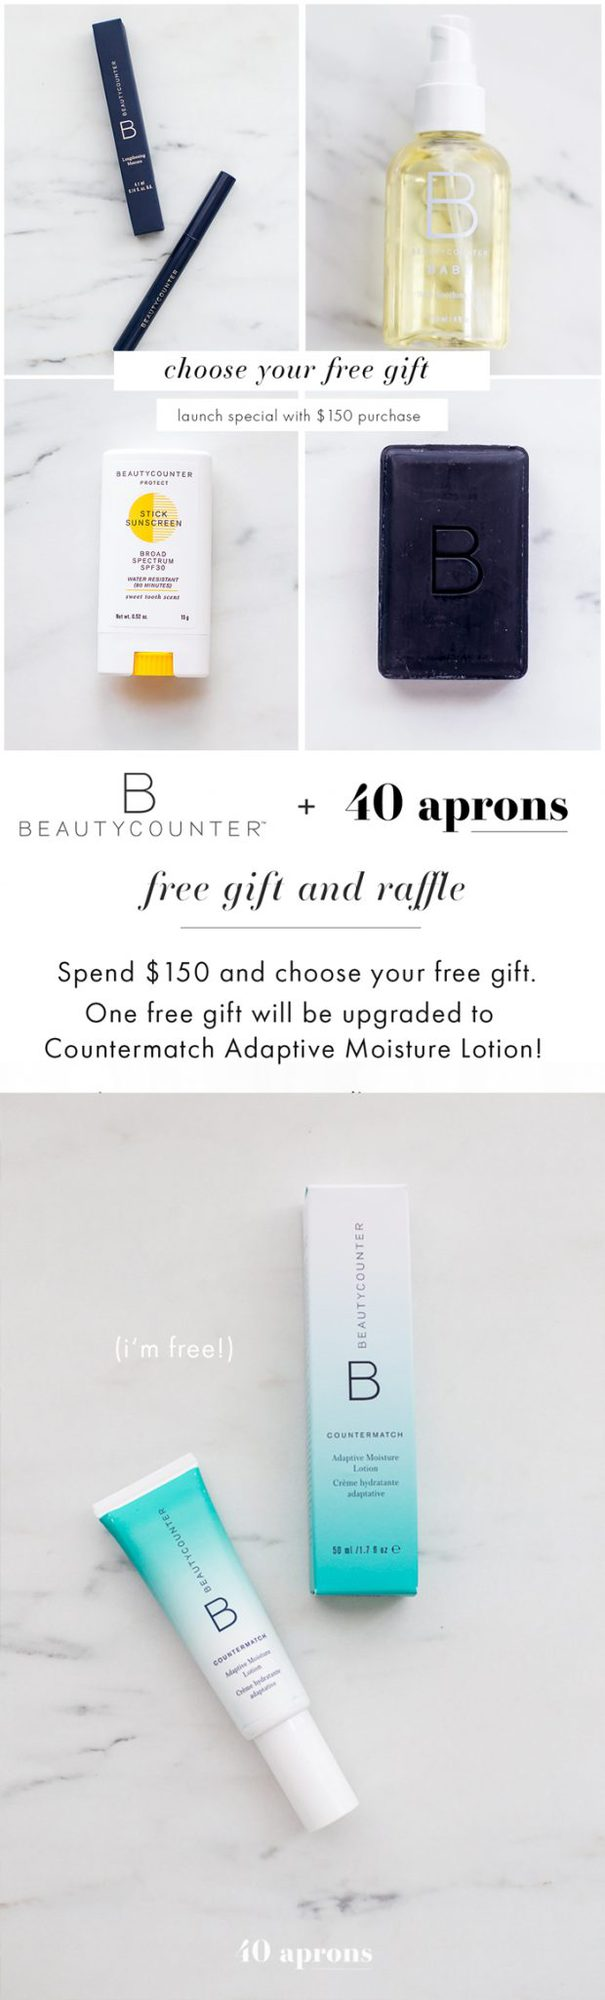 Beautycounter free gift launch special! Get your choice of a Charcoal Cleansing Bar, Baby Soothing Oil, Protect Sunscreen Stick, or Lengthening Mascara with the purchase of $150 or more. AND one will win a Beautycounter Countermatch Moisture Lotion. Kind of the perfect Beautycounter free gift, eh?